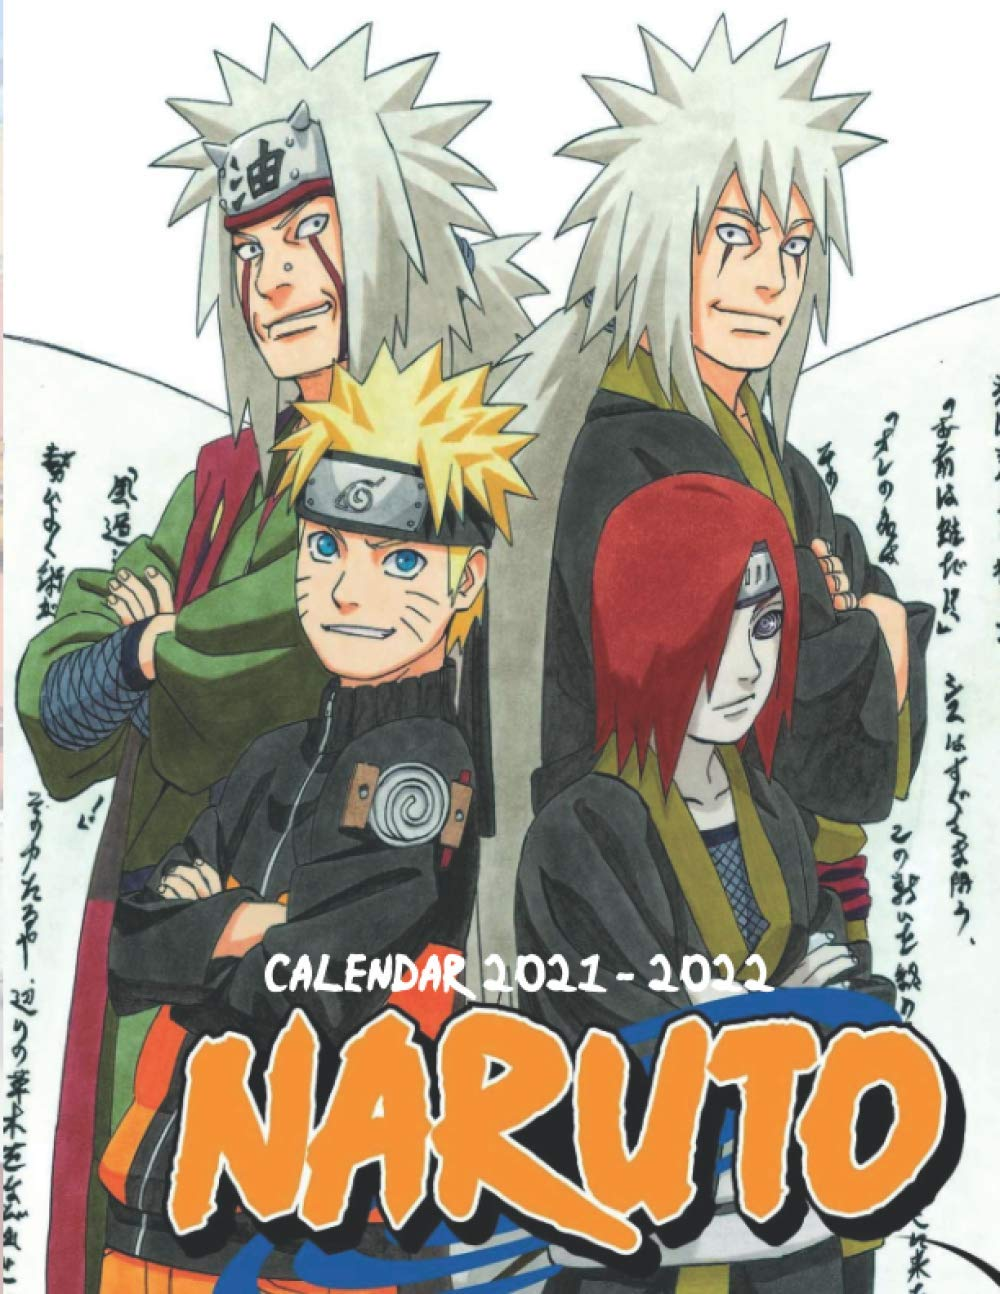 Naruto Calendar 2021-2022: Anime 18-month Calendar 2021-2022 with 8.5x11 inches size - Exclusive Illustrations!